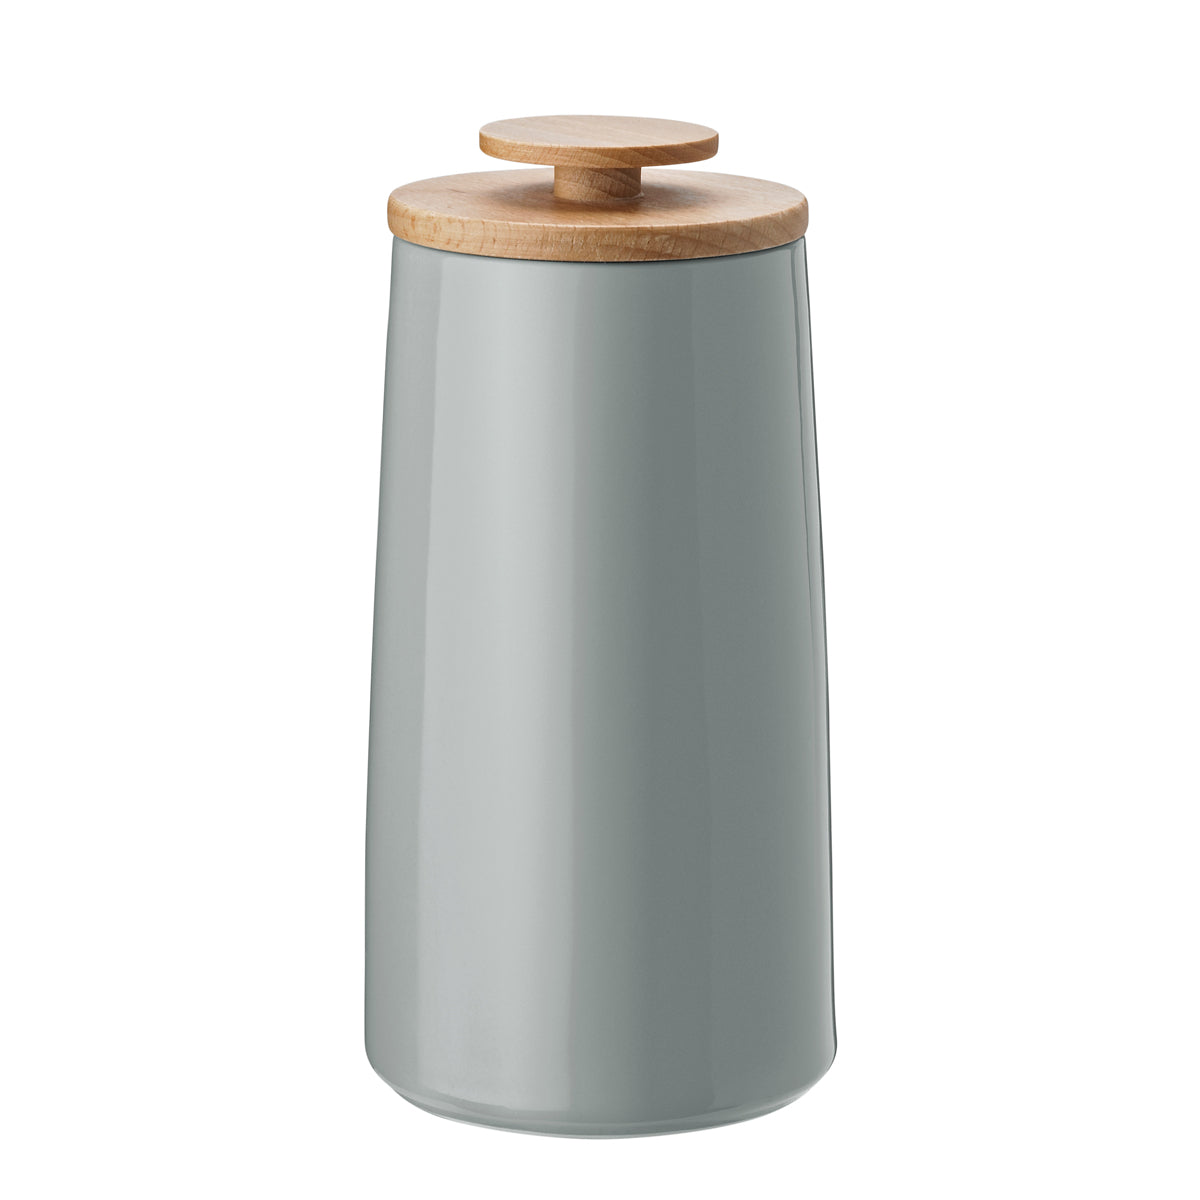 Emma storage jar 300g